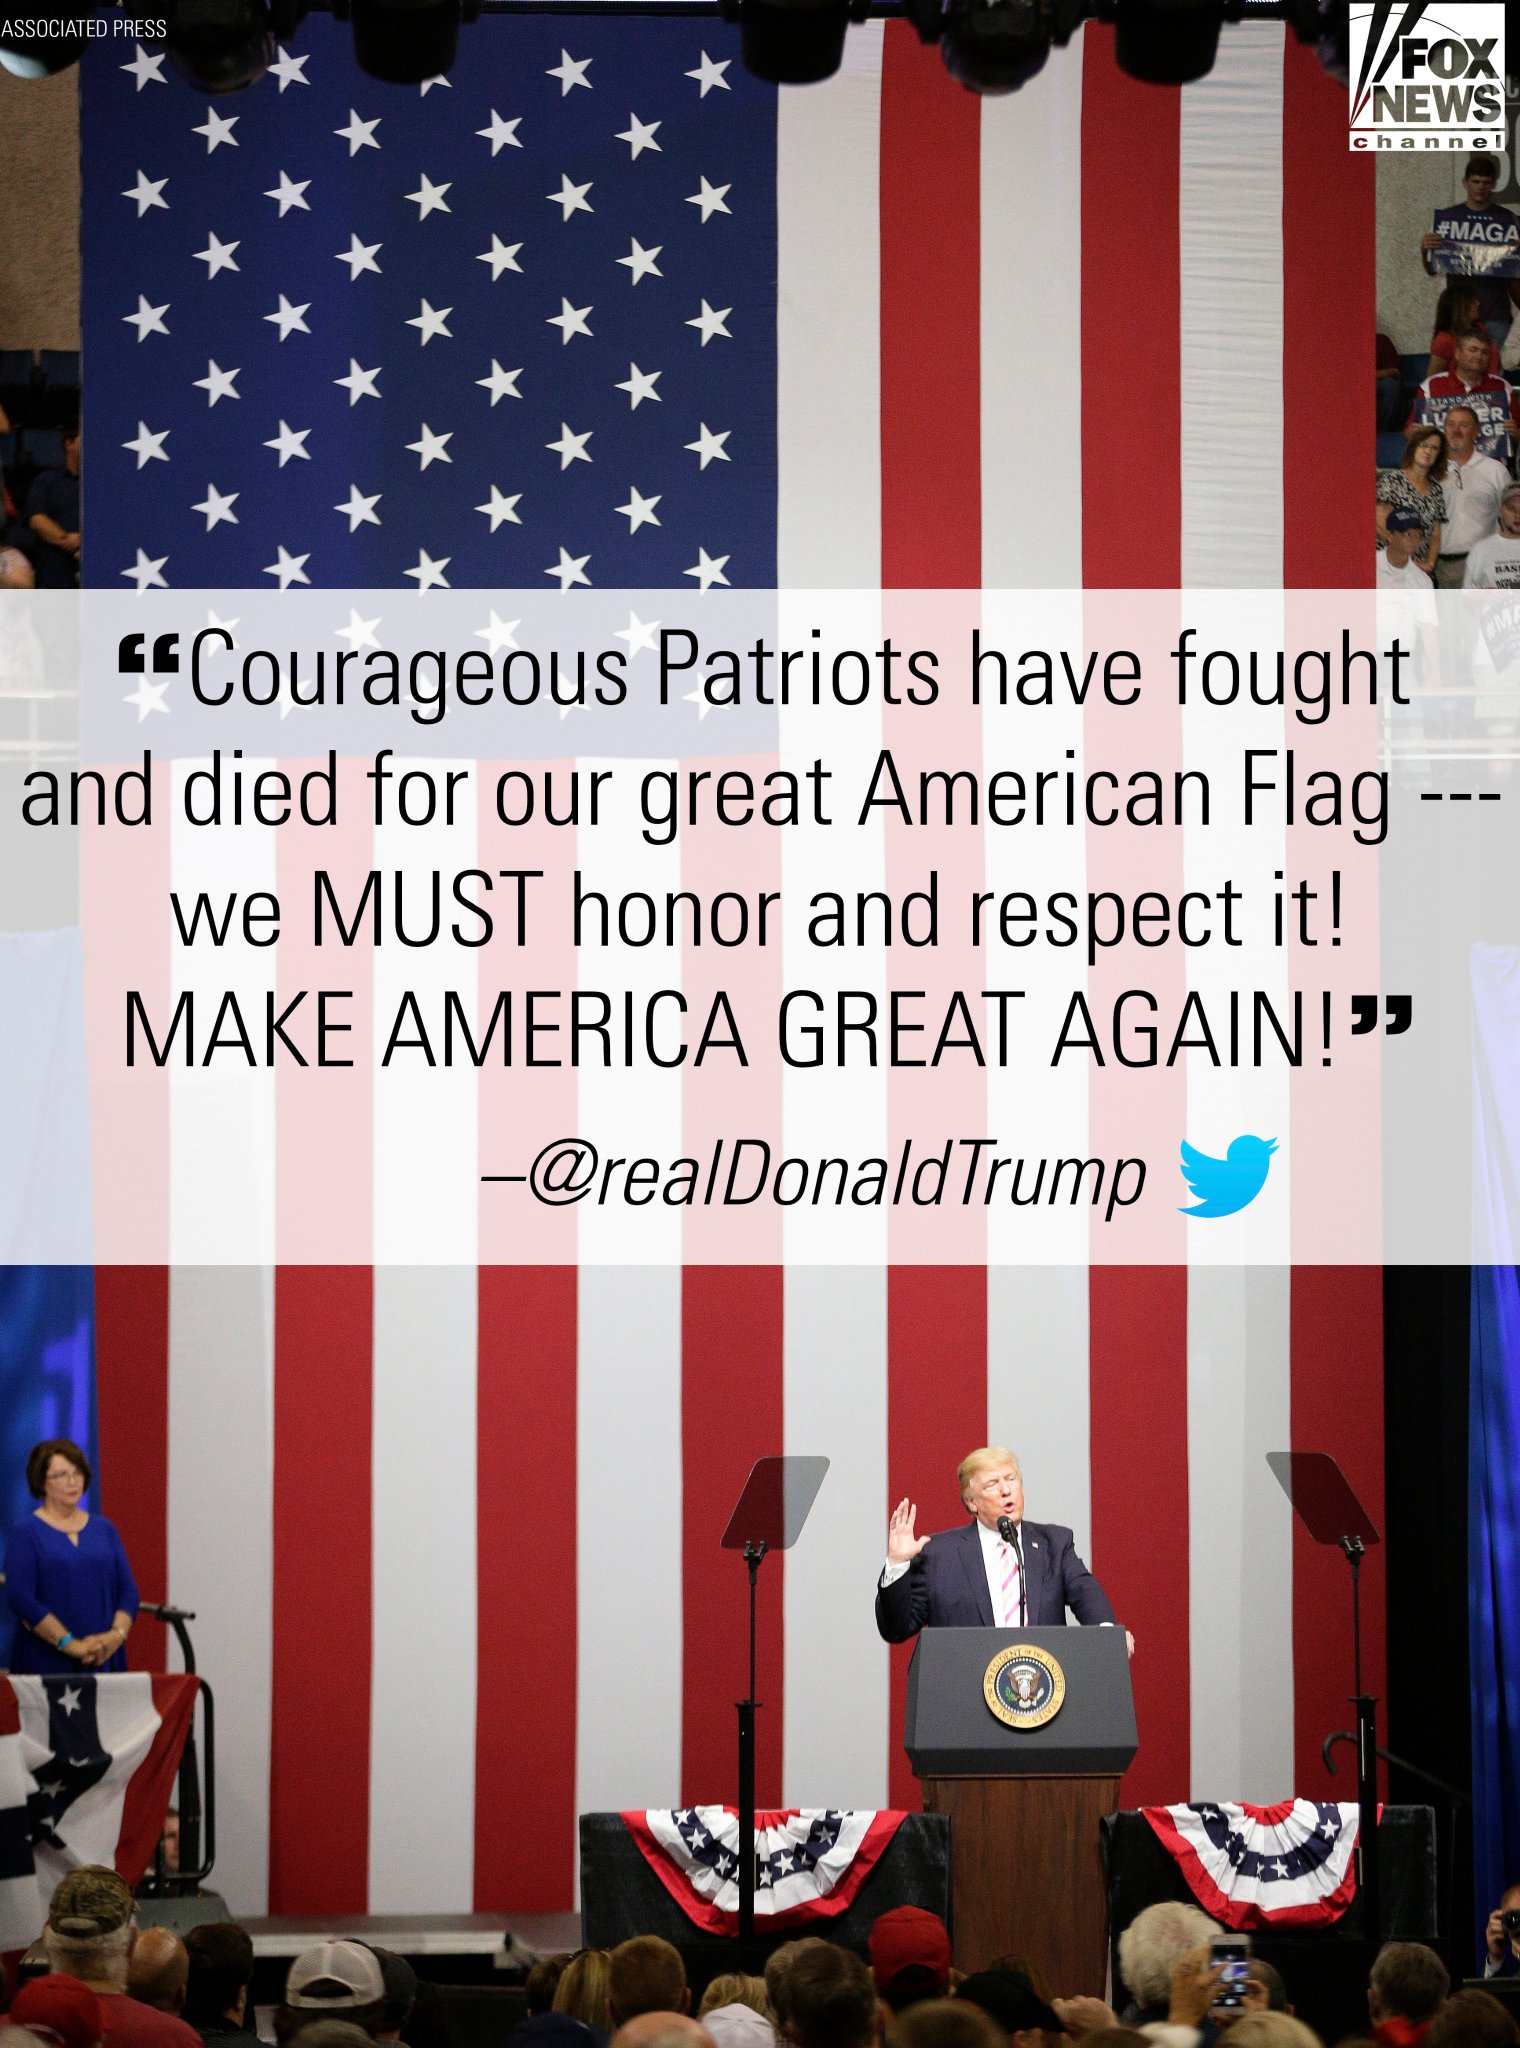 Moments ago, President @realDonaldTrump sent a message honoring the American flag. https://t.co/dMH7w9sjvQ